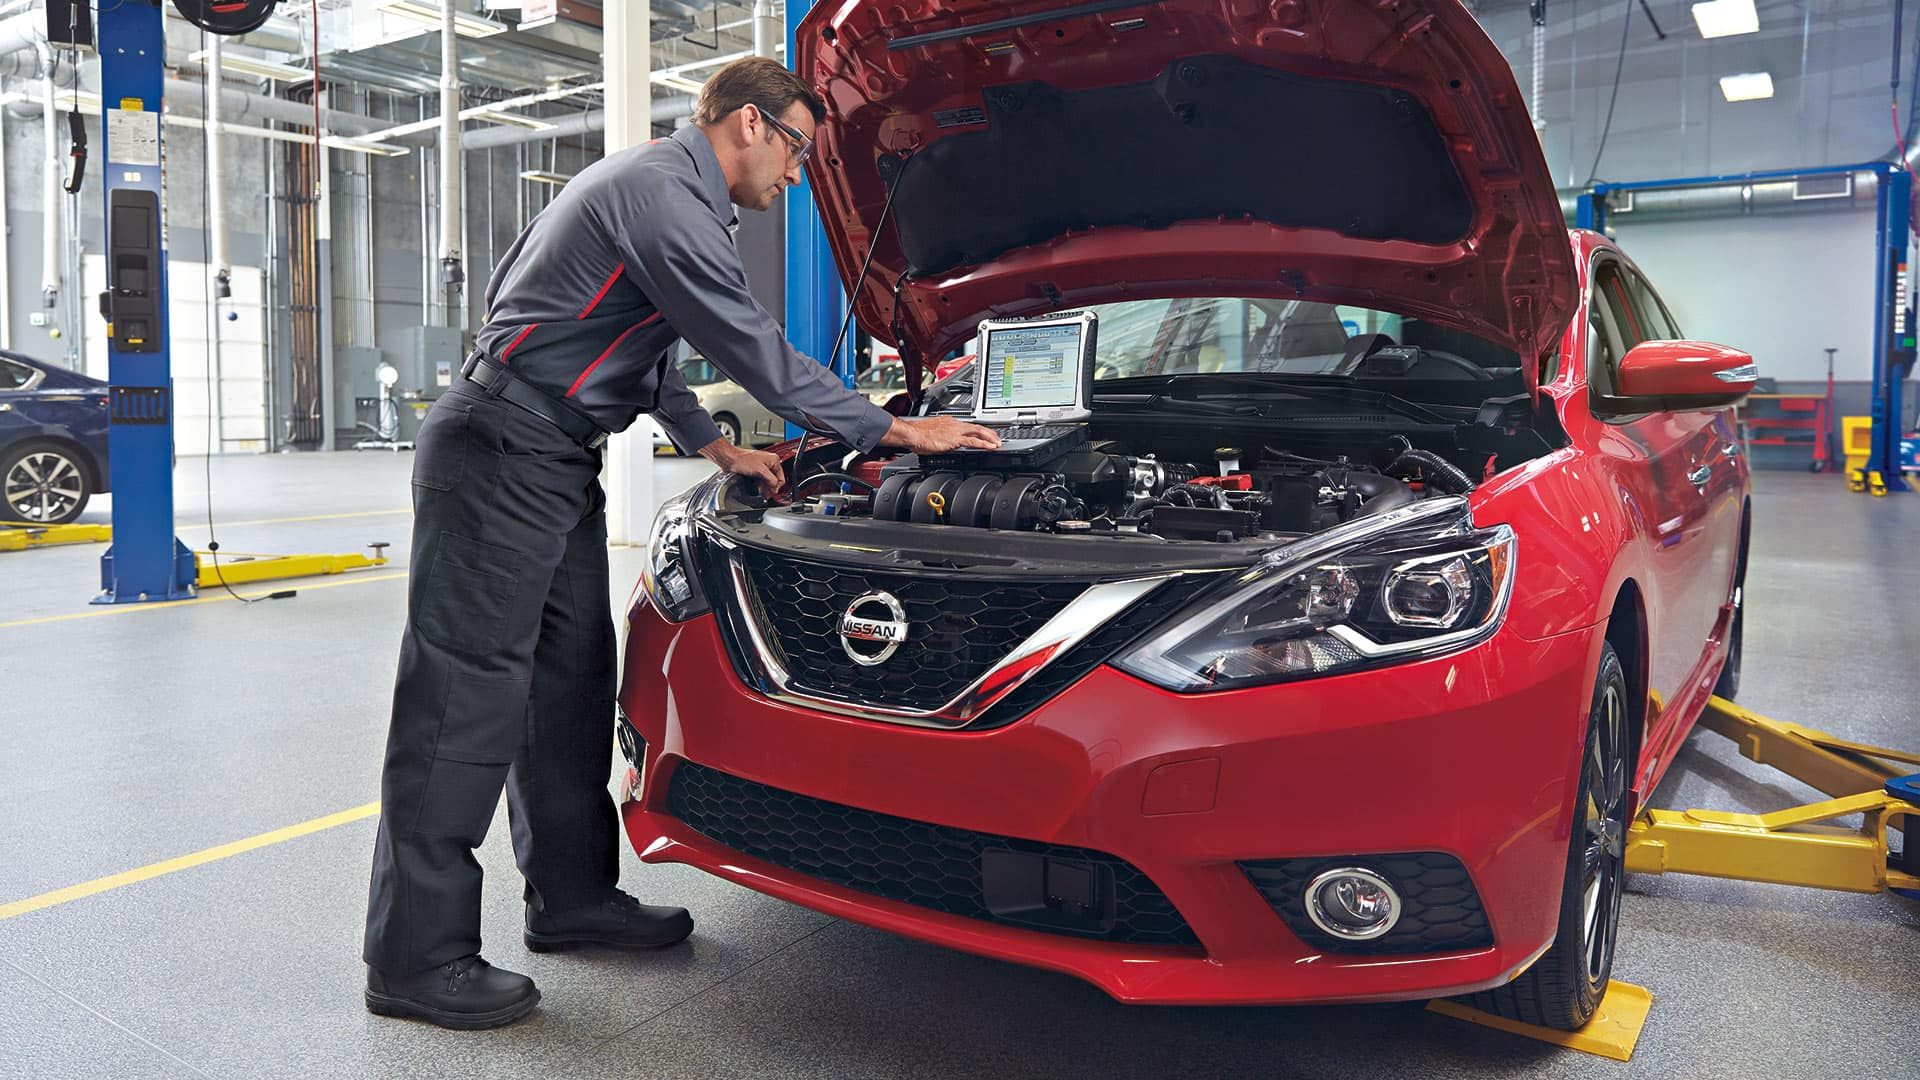 Boch Nissan South is a Family Owned Dealership near Attleboro, MA | Nissan mechanic running a diagnostics test